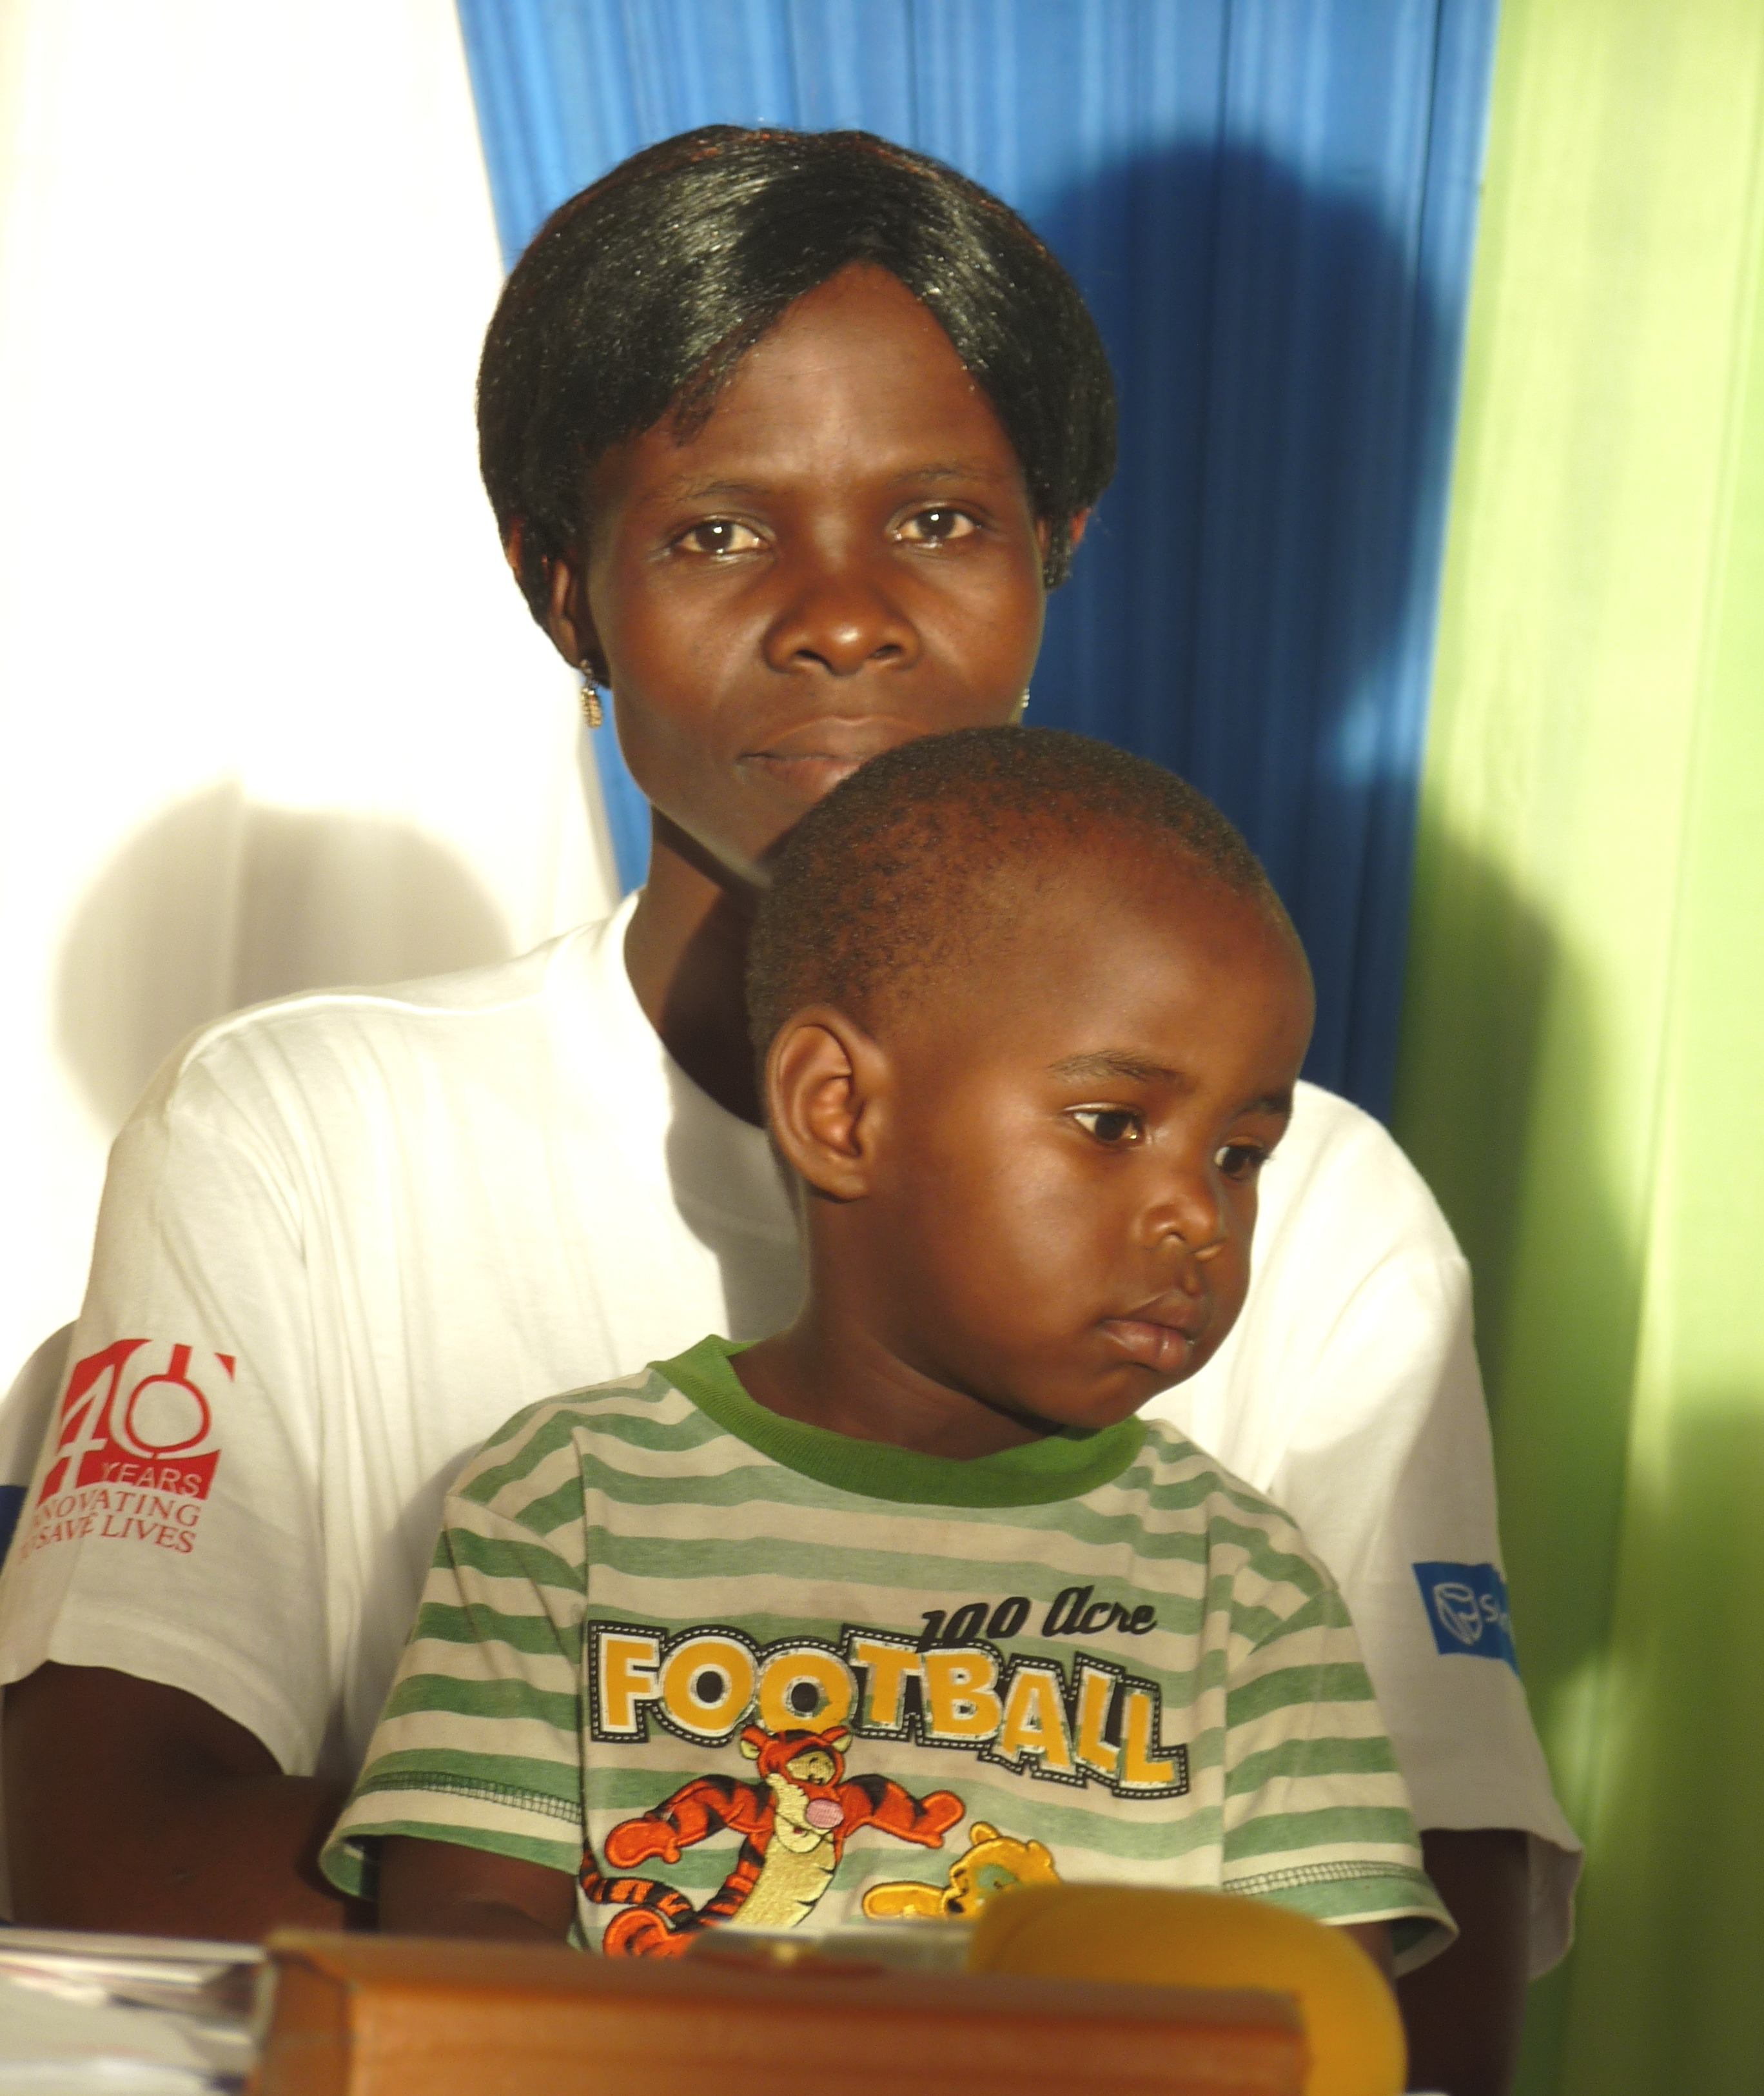 Milica Damiano with son, Chikondi, at Jhpiego's 40th anniversary celebration in Lilongwe, Malawi, March 2014